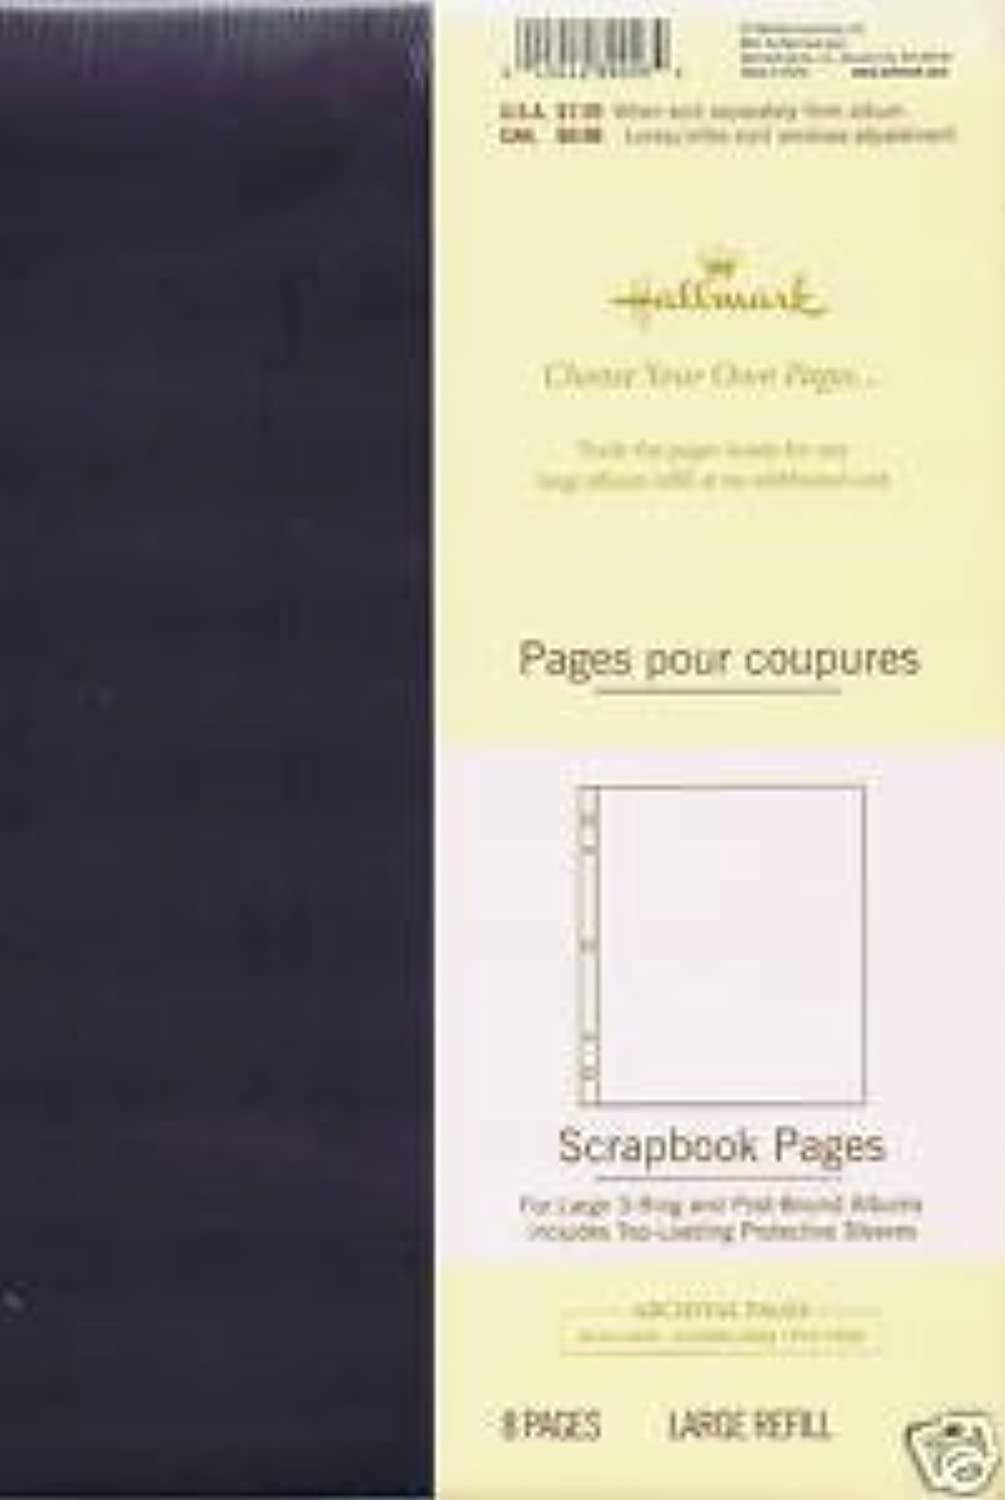 Hallmark Scrapebook Pages for Large 3-ring Post Bound Albums